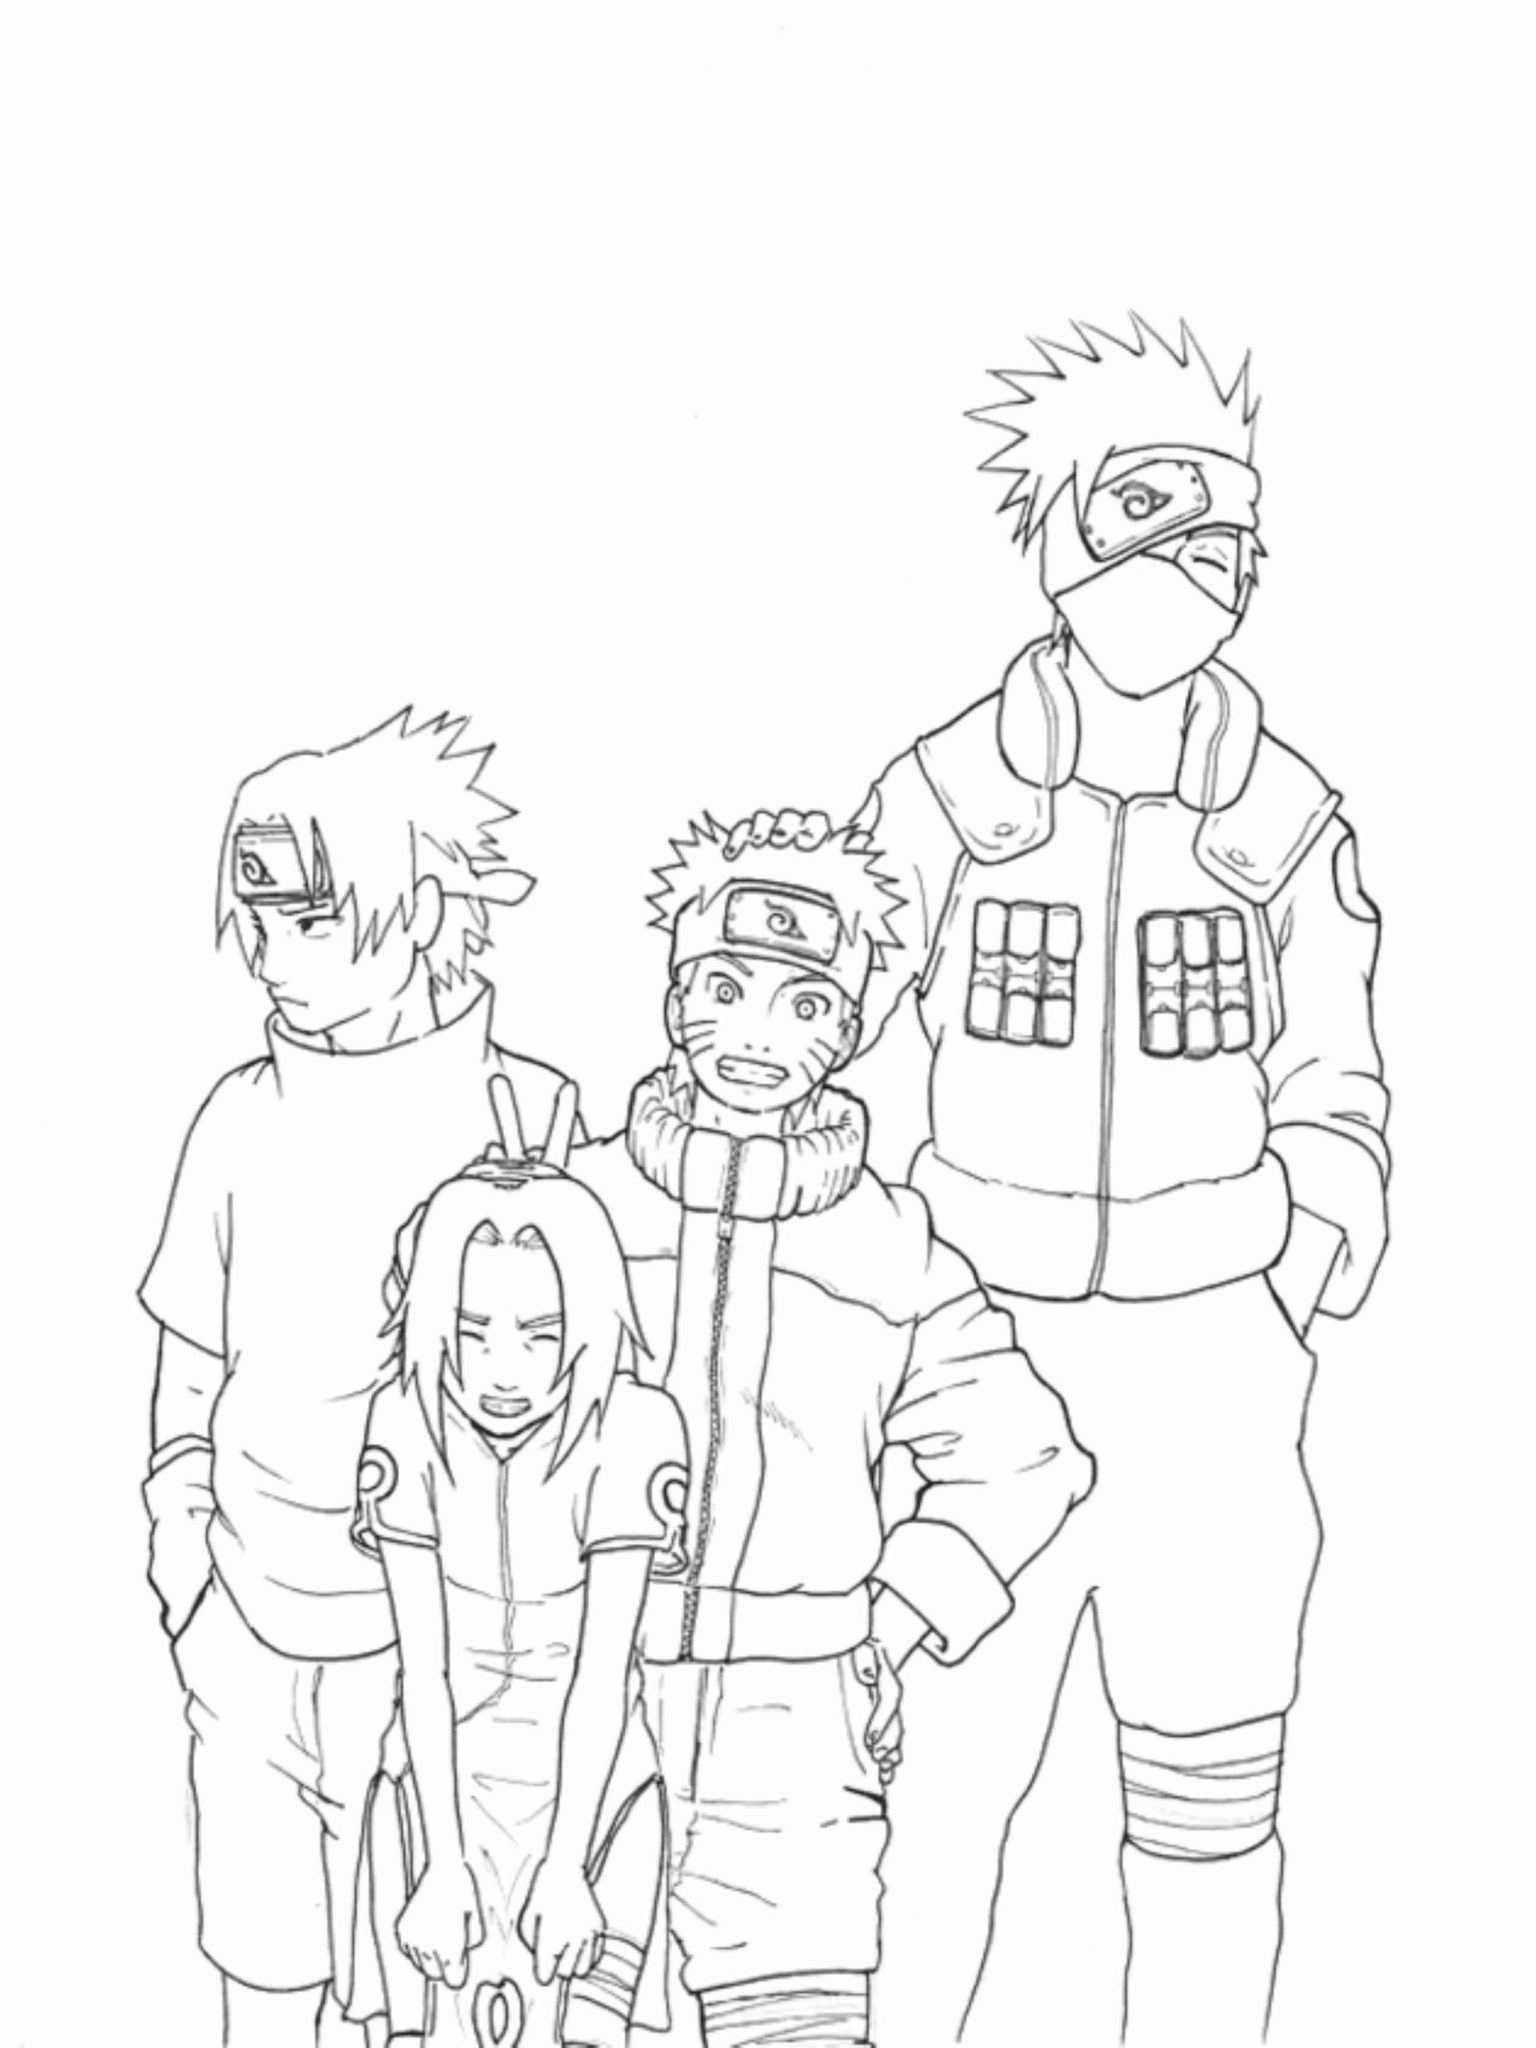 Anime Naruto Coloring Pages Kakashi And Naruto Coloring Pages